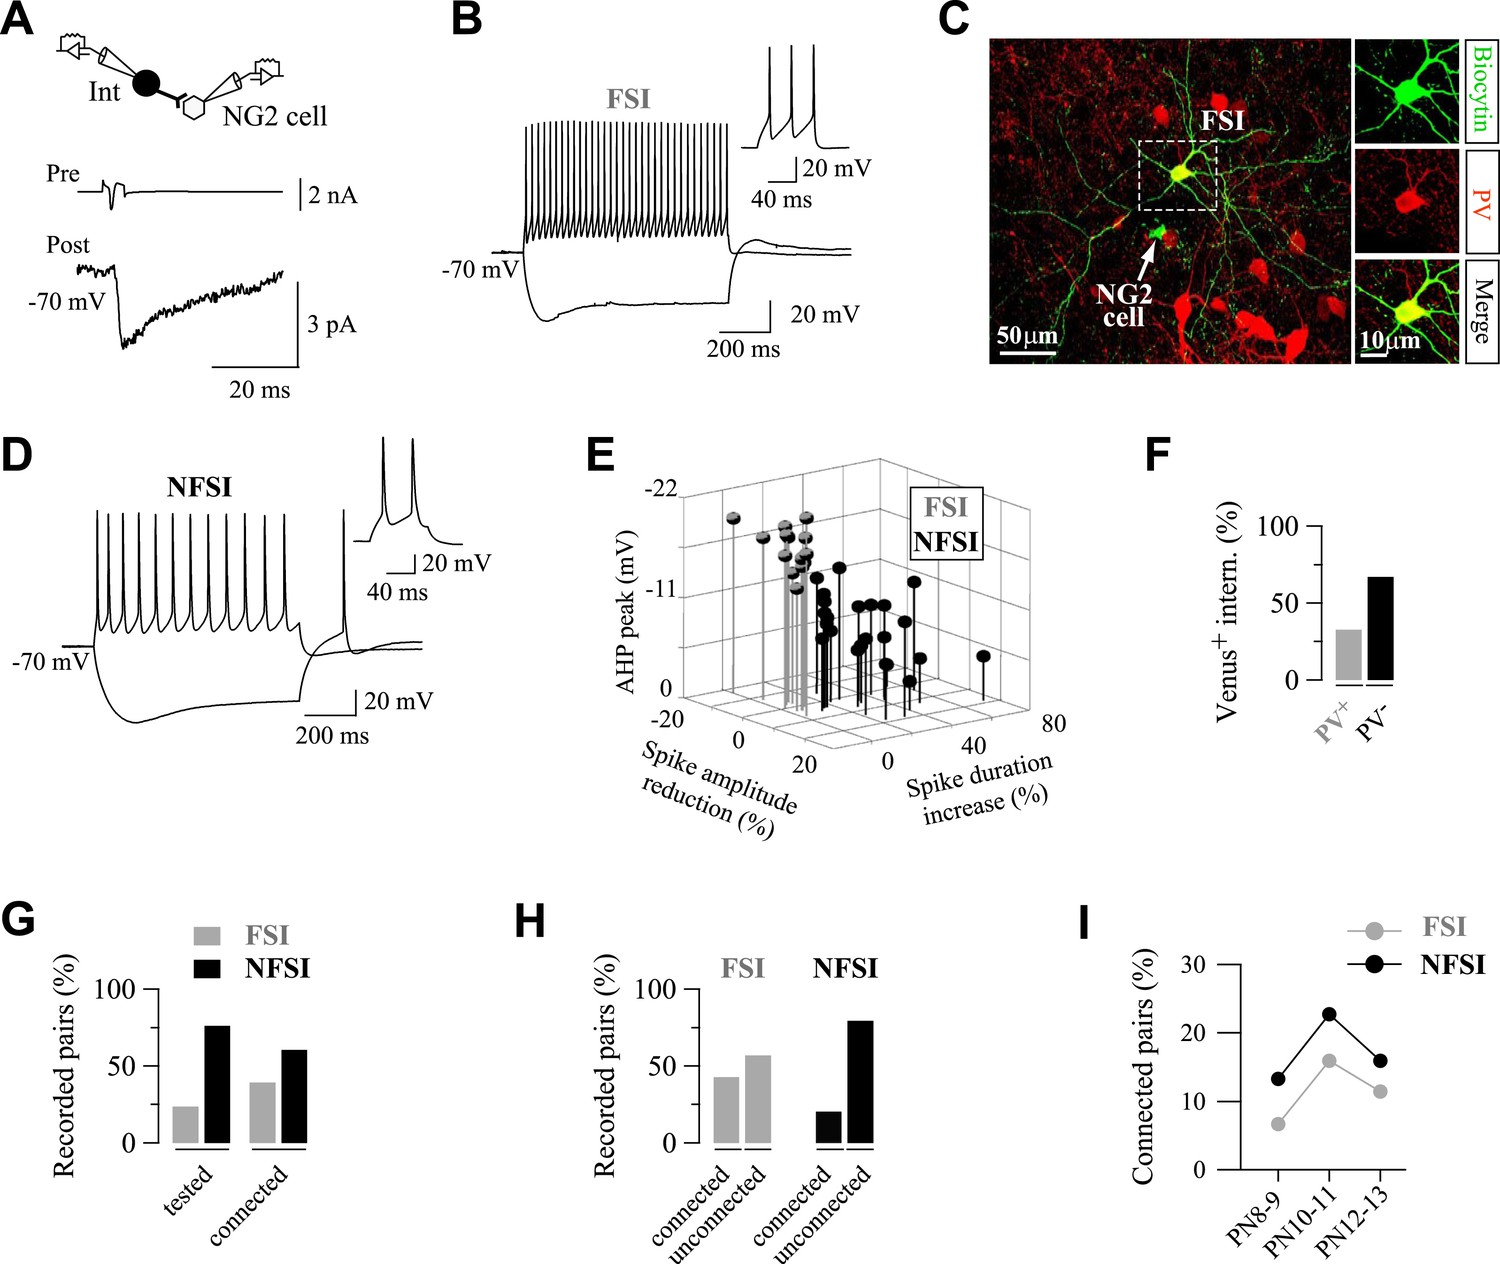 Interneurons And Oligodendrocyte Progenitors Form A Structured Variable Dc Power Supply Circuit Together With Top Circuits Page 707 Fsis Are Highly Connected To Ng2 Cells